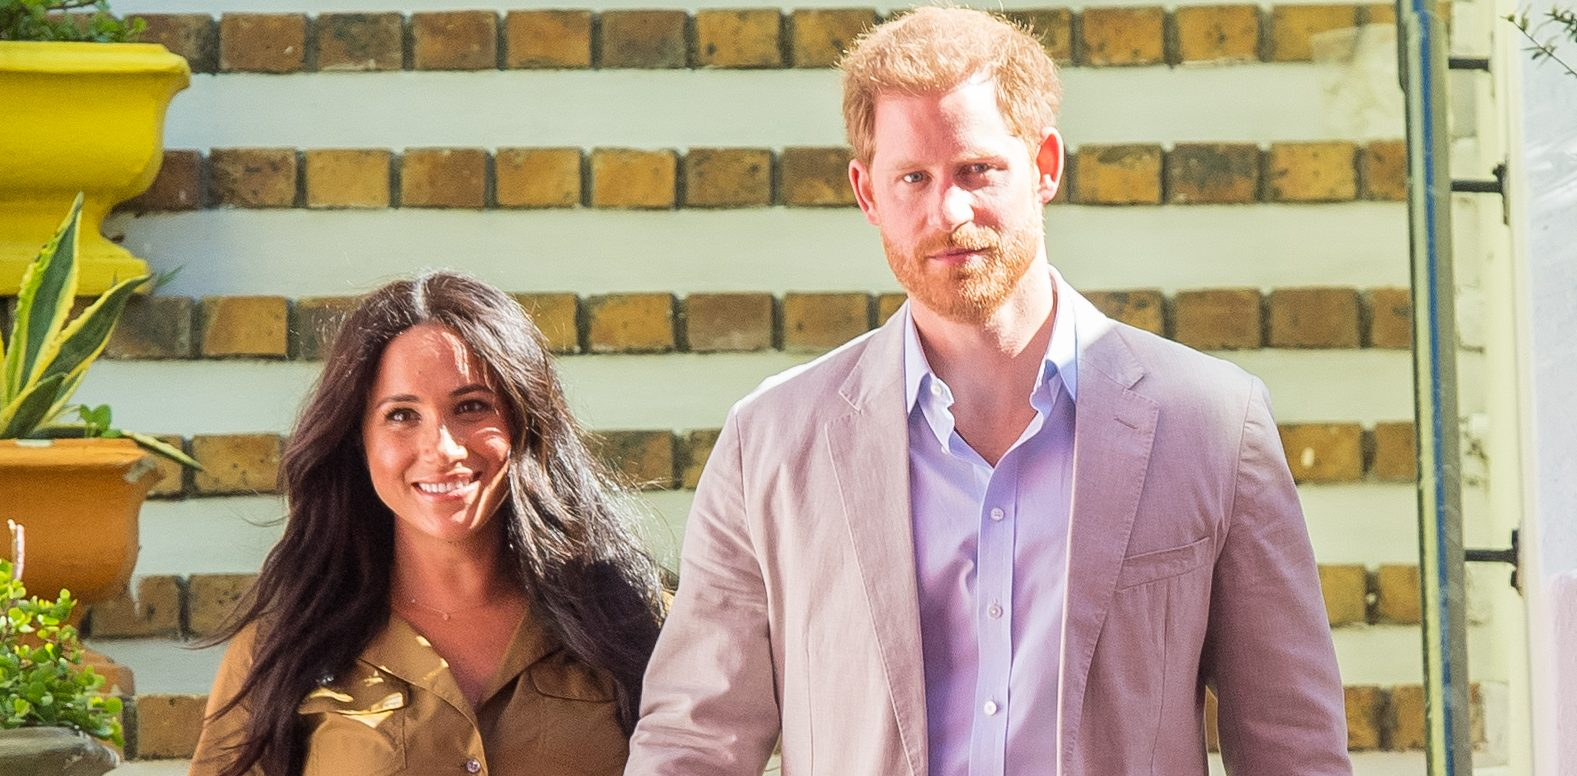 The Duke and Duchess of Sussex issue apology after embarrassing social media blunder